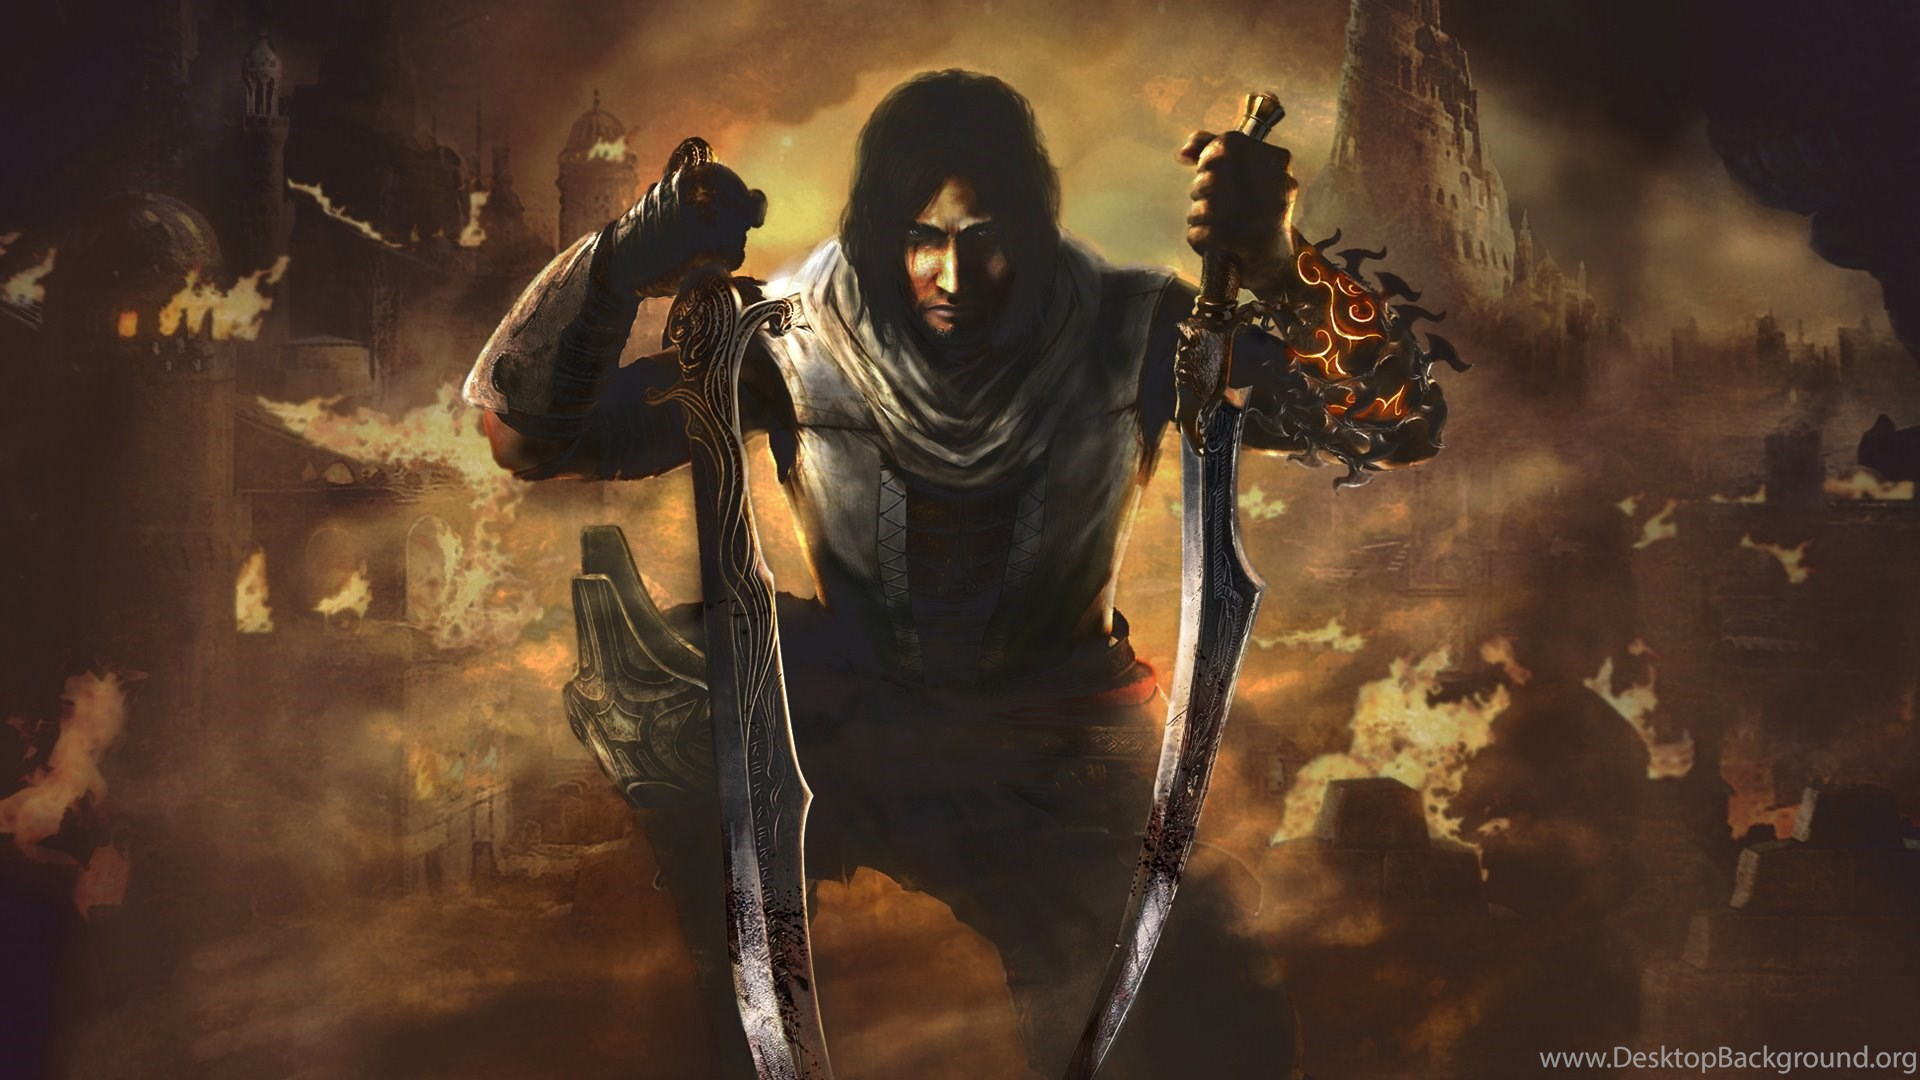 14 Prince Of Persia Warrior Within Hd Wallpapers Desktop Background